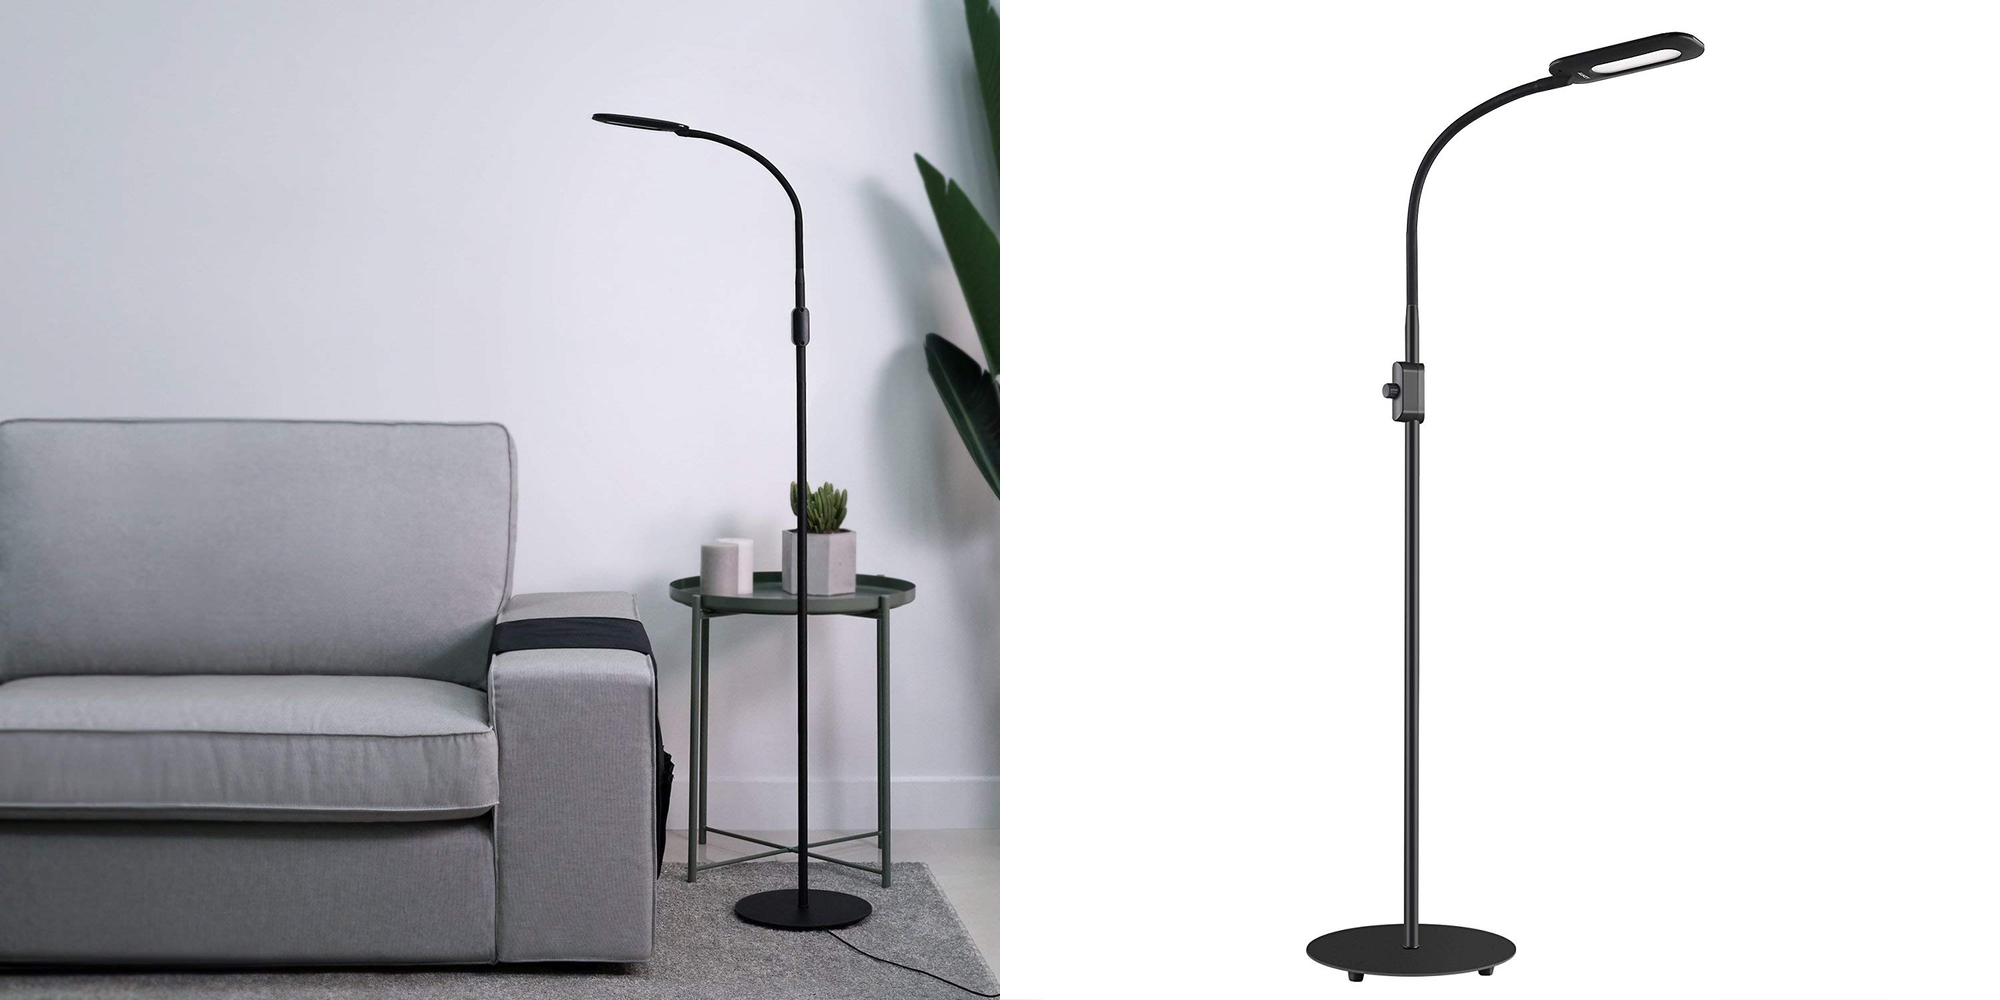 These Aukey Led Gooseneck Floor Lamps Illuminate Your Space Starting At 37 Reg Up To 70 9to5toys